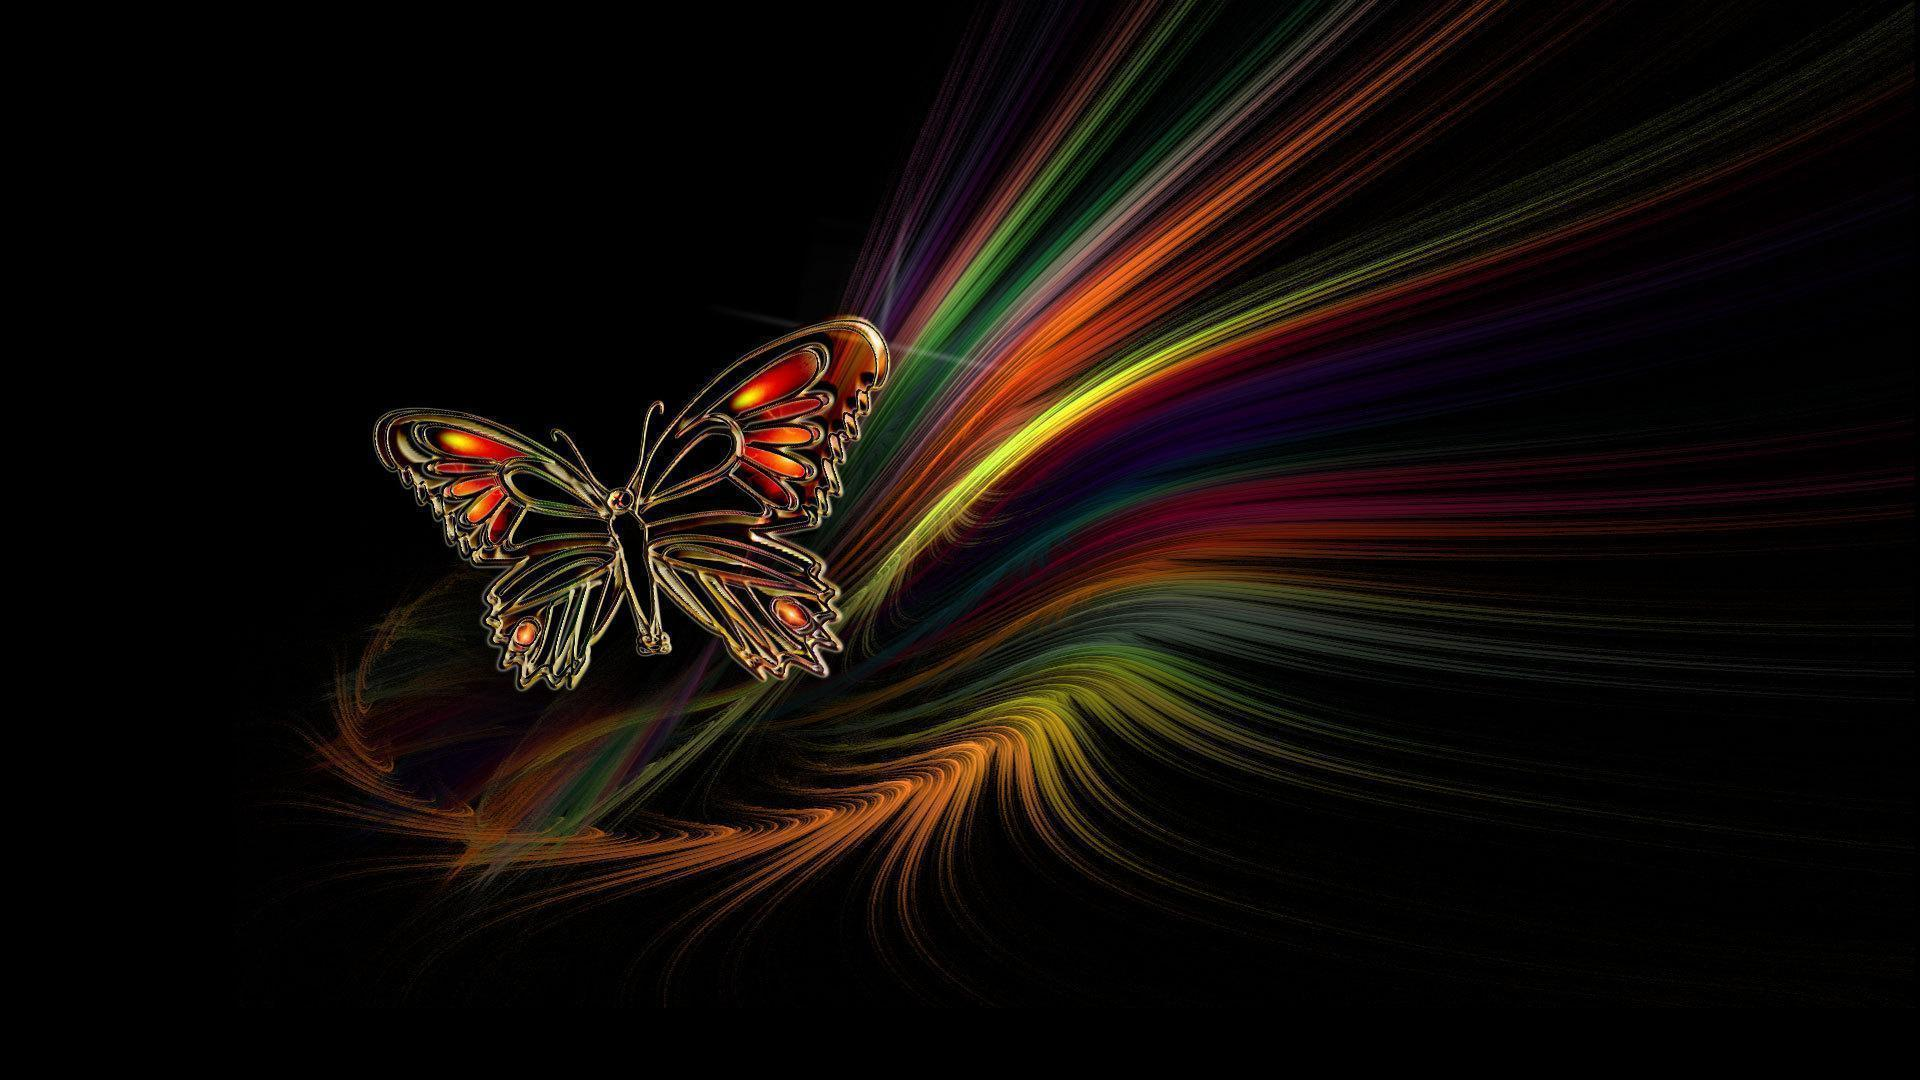 Love Wallpaper Full Hd High Quality : Butterfly Desktop Wallpapers - Wallpaper cave